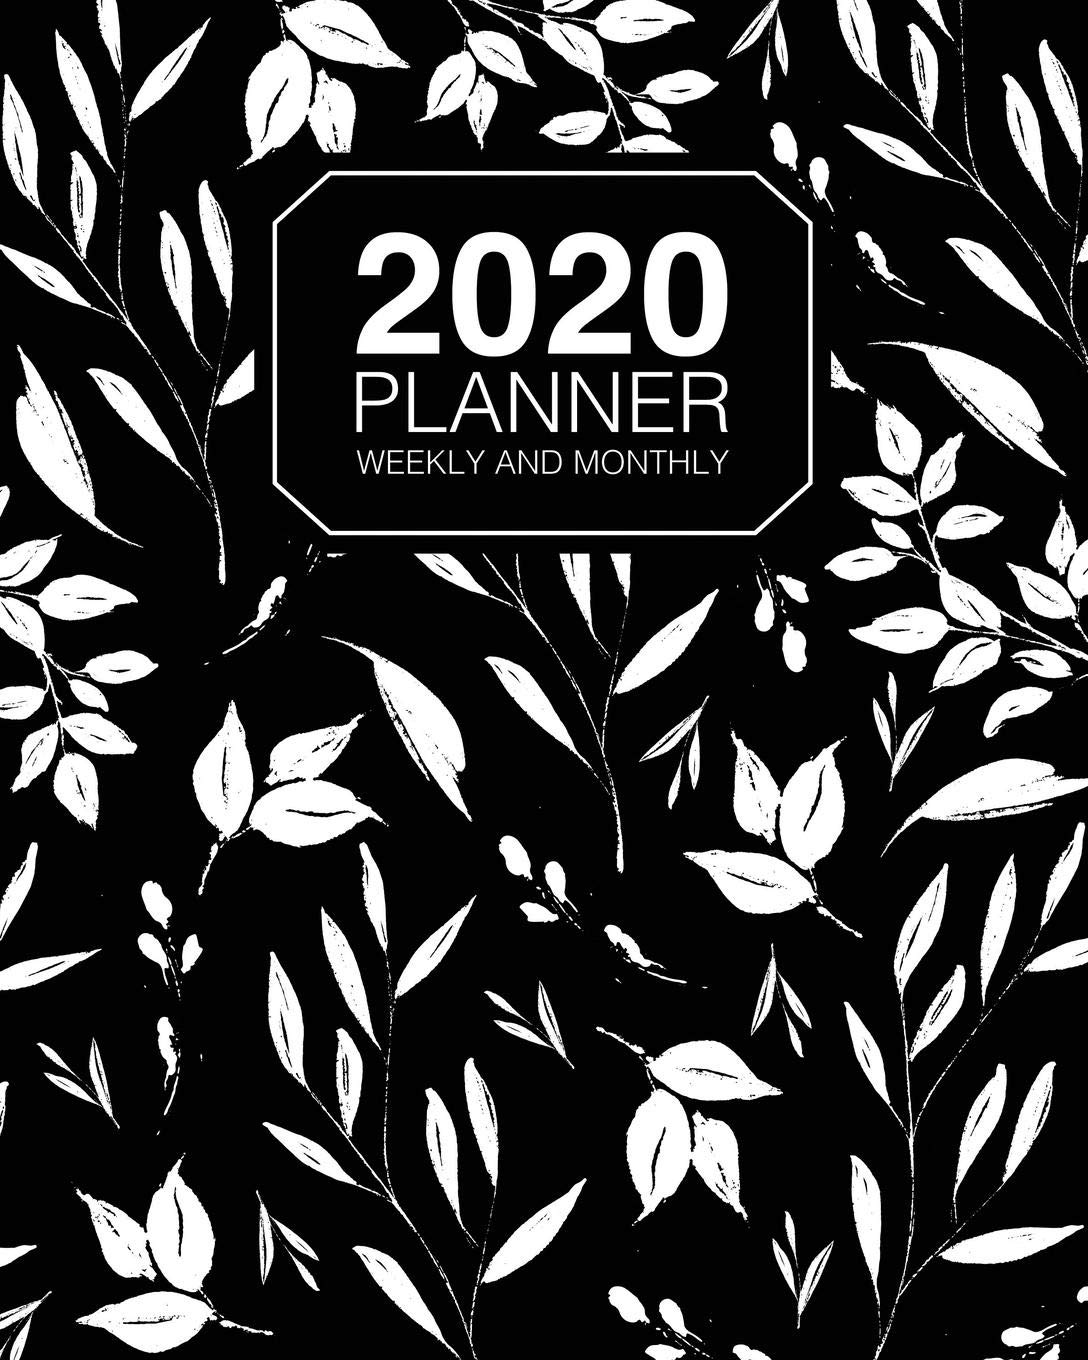 2020 Planner Weekly And Monthly: 2020 Agenda Organizer And ...